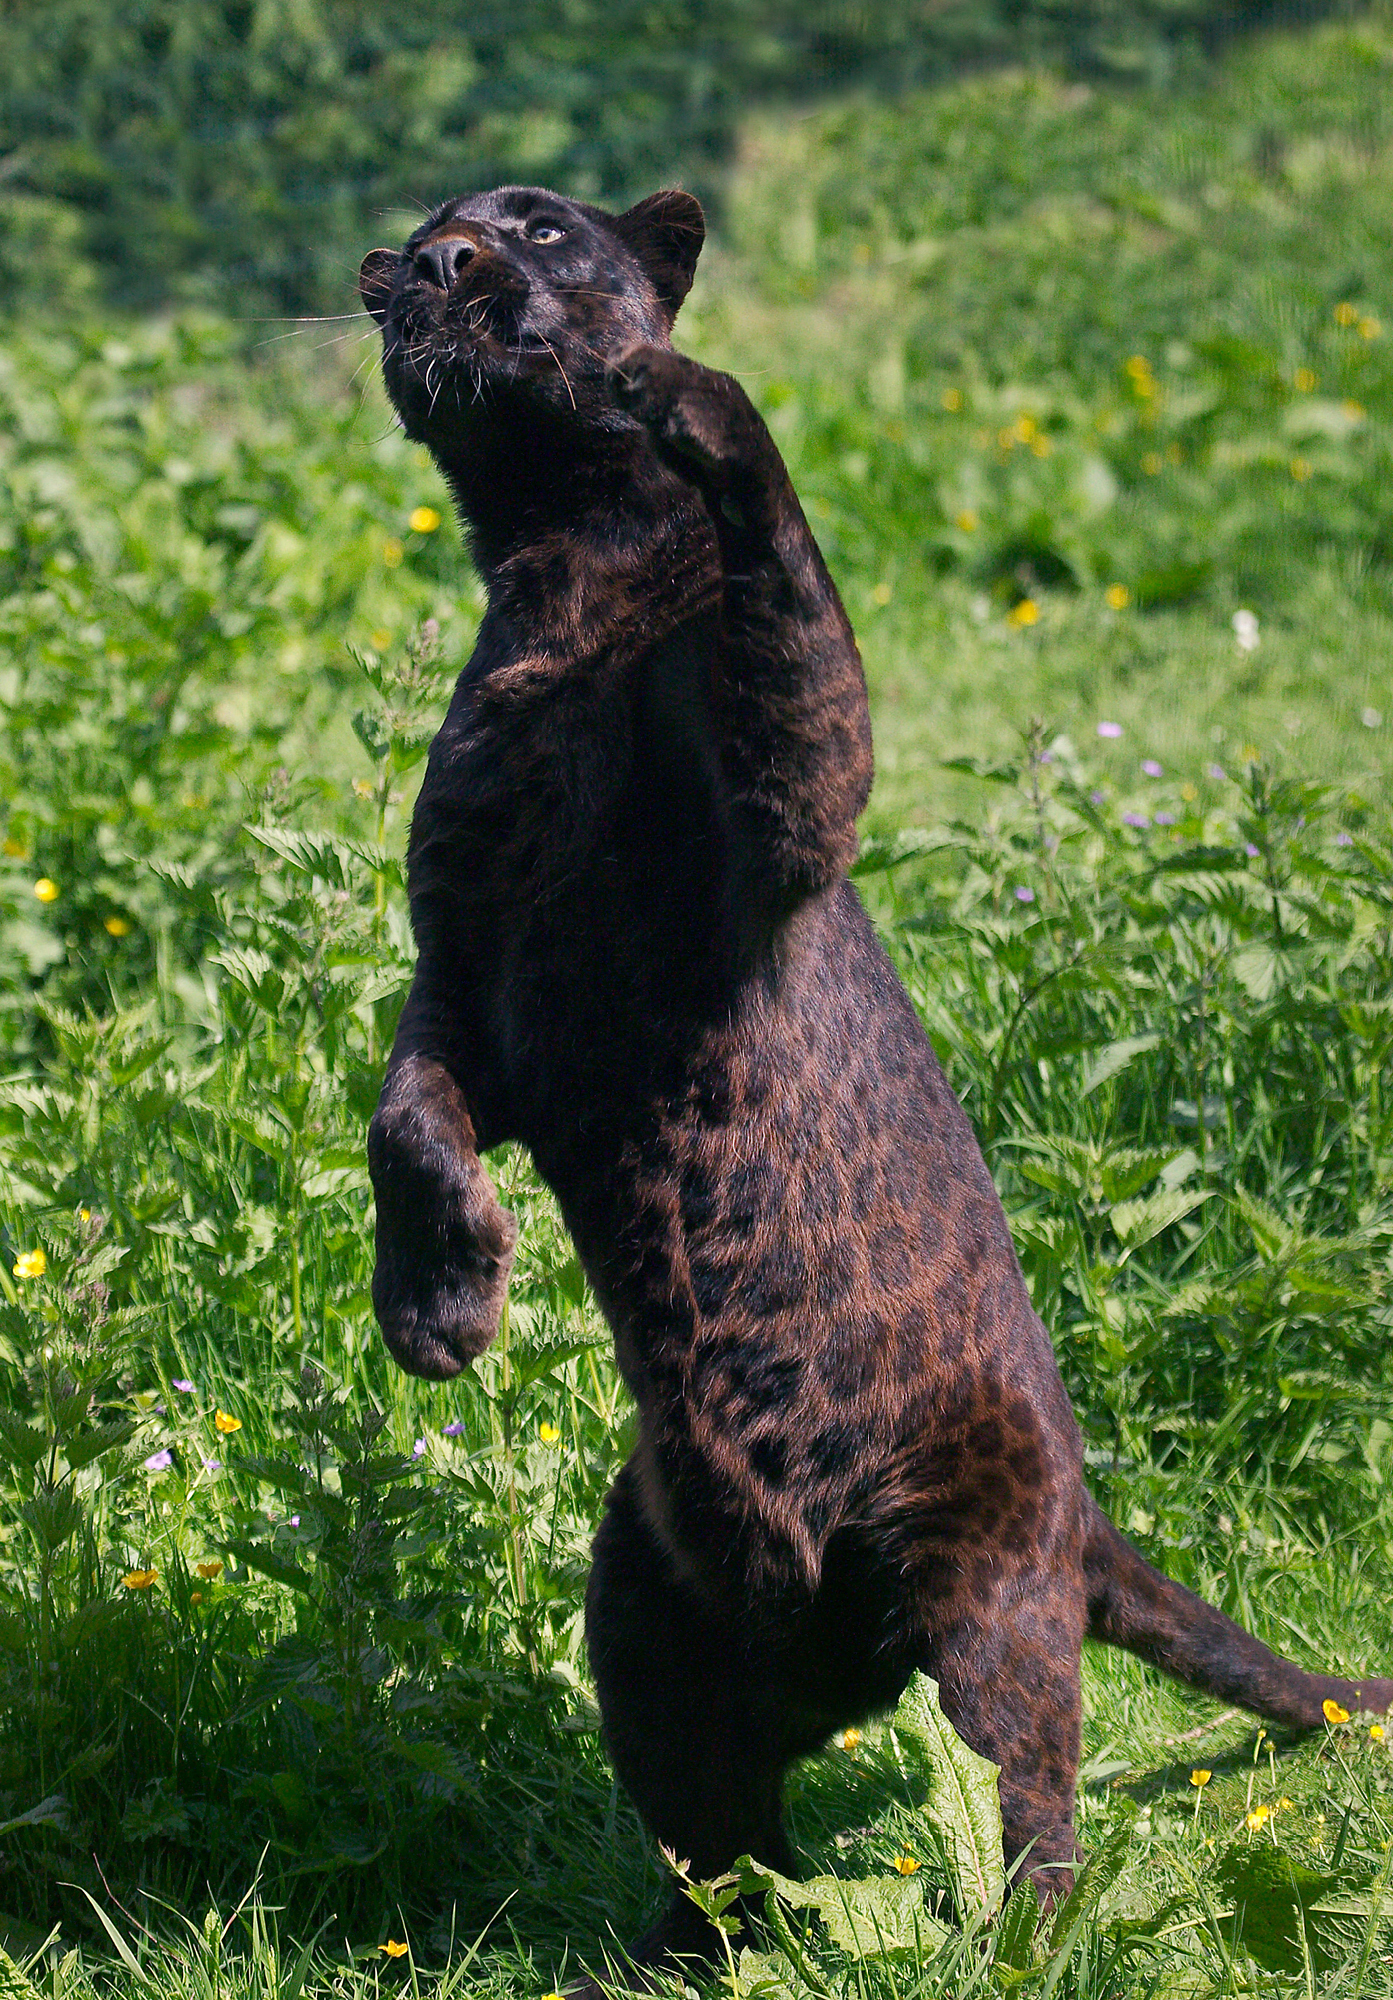 Melanism (black fur) occurs in about 11% of leopards globally